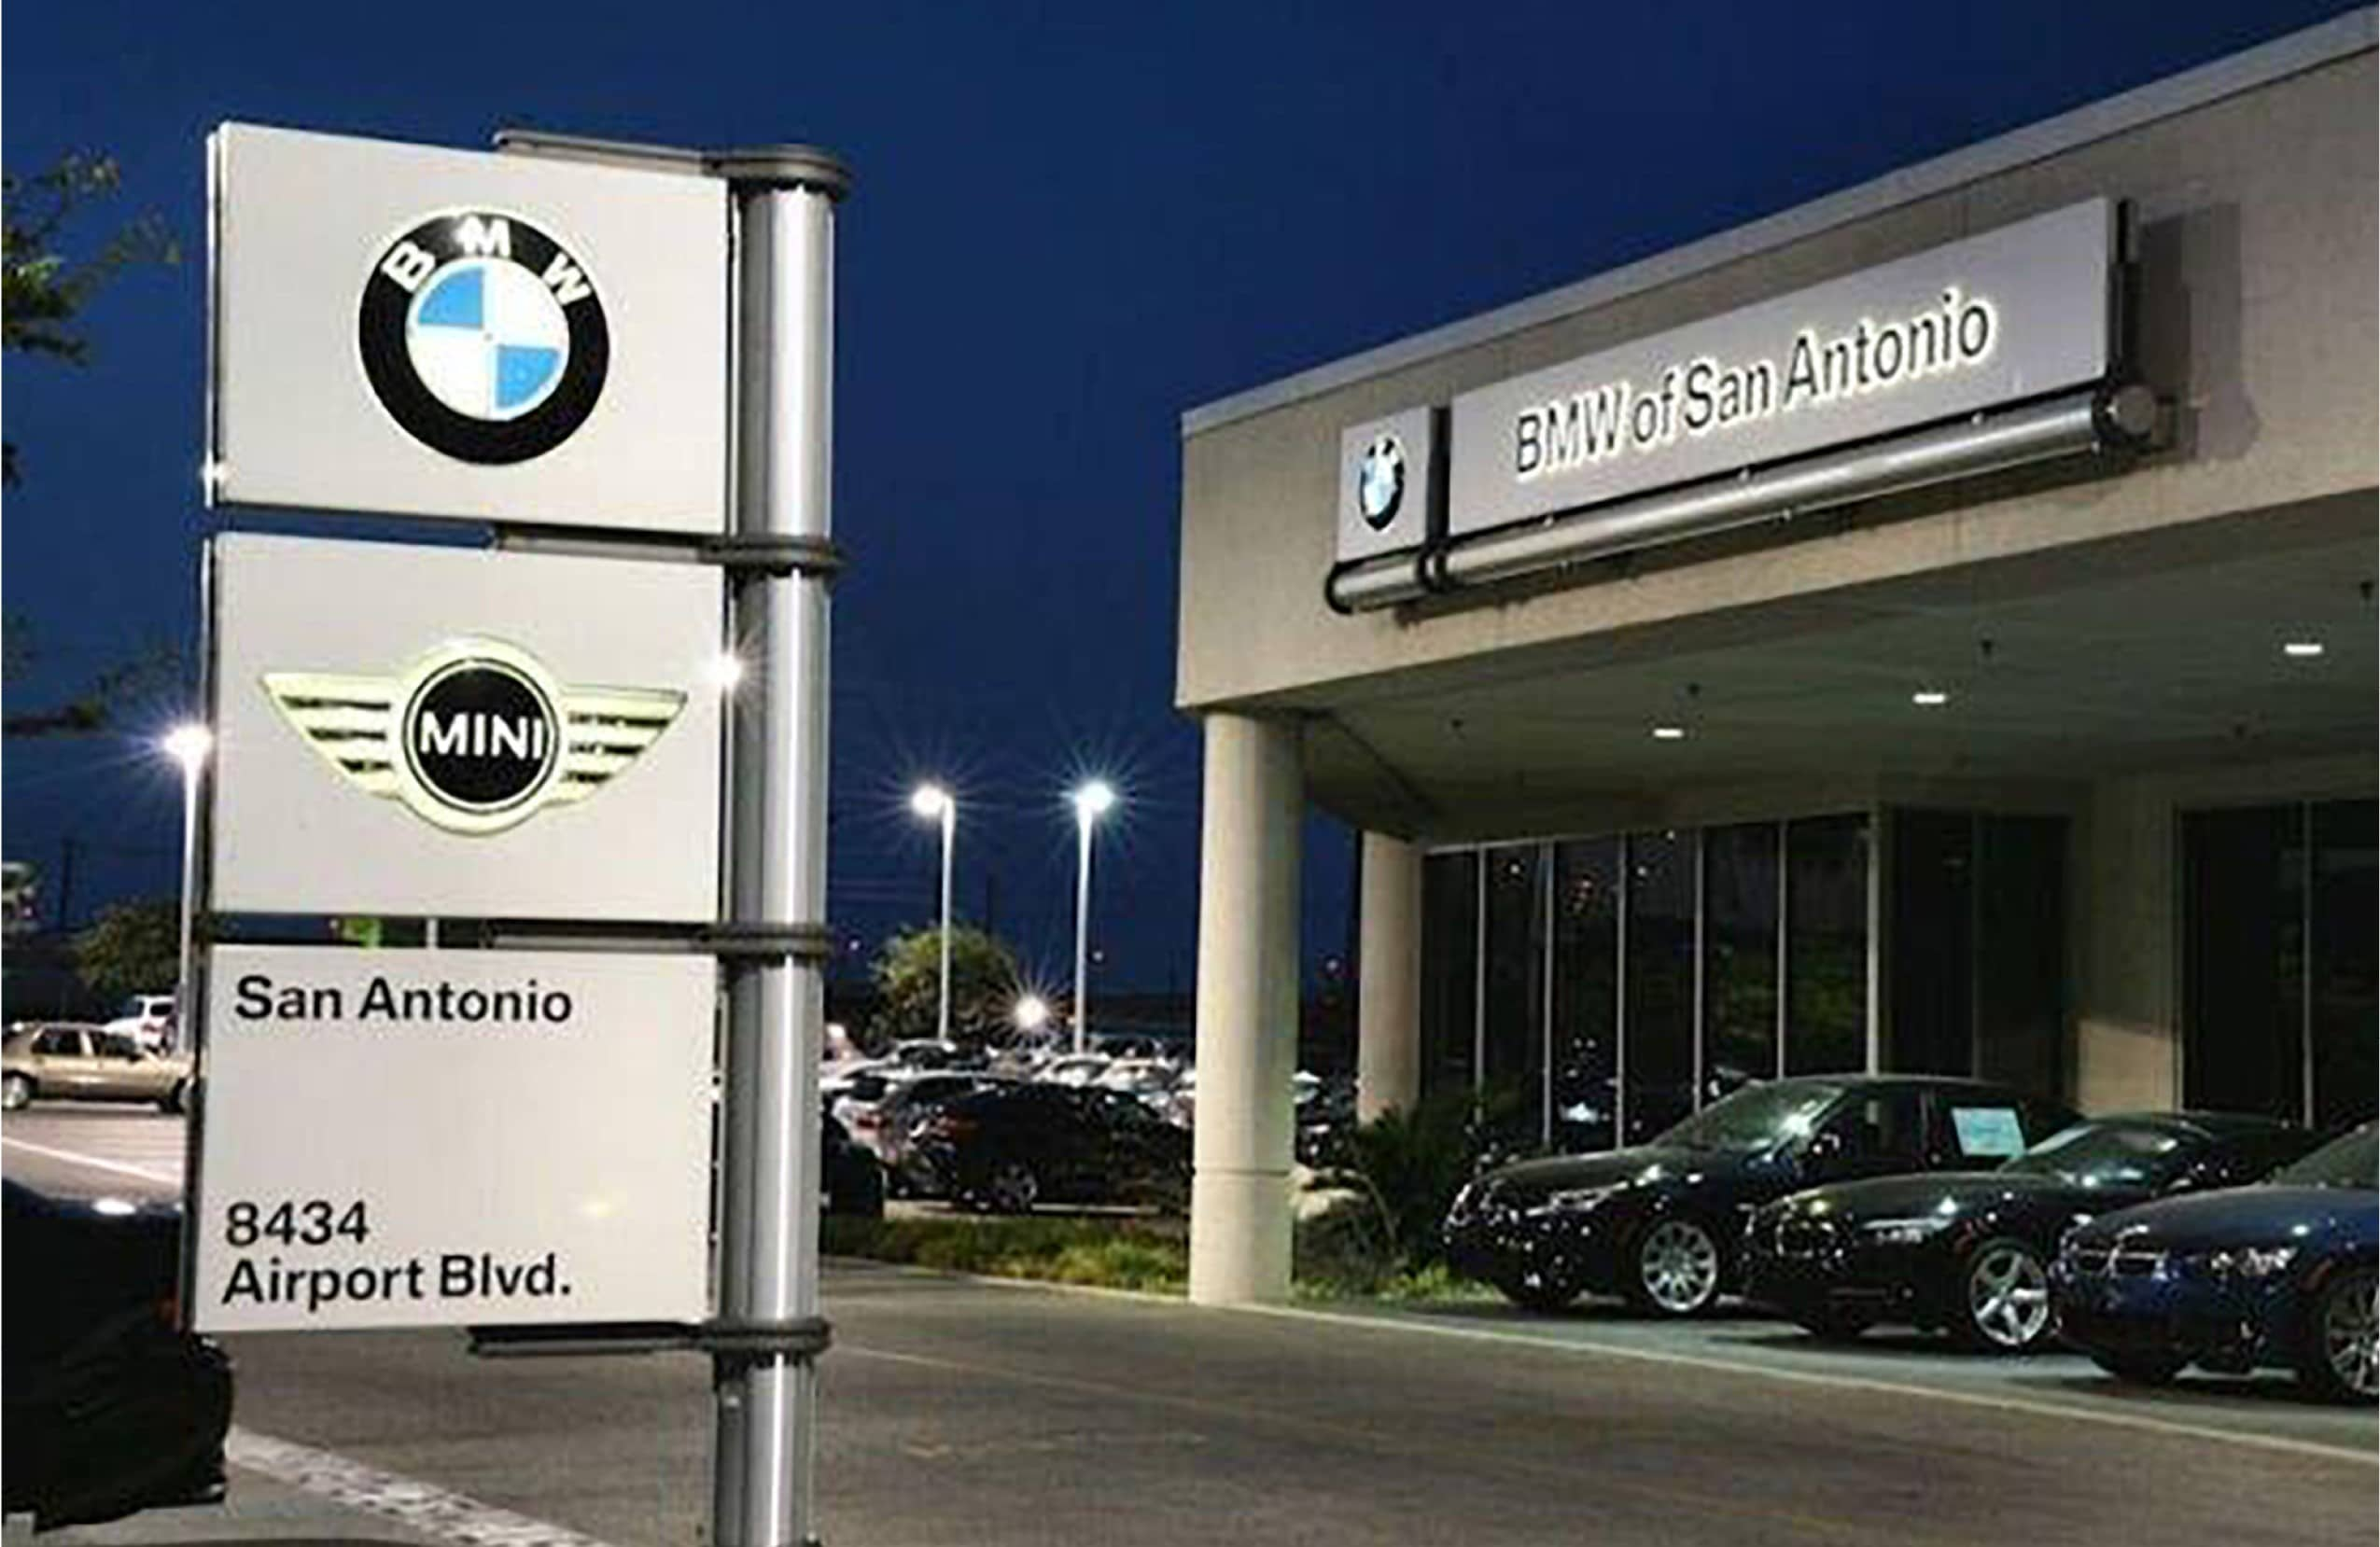 about bmw of san antonio texas luxury car dealer. Black Bedroom Furniture Sets. Home Design Ideas